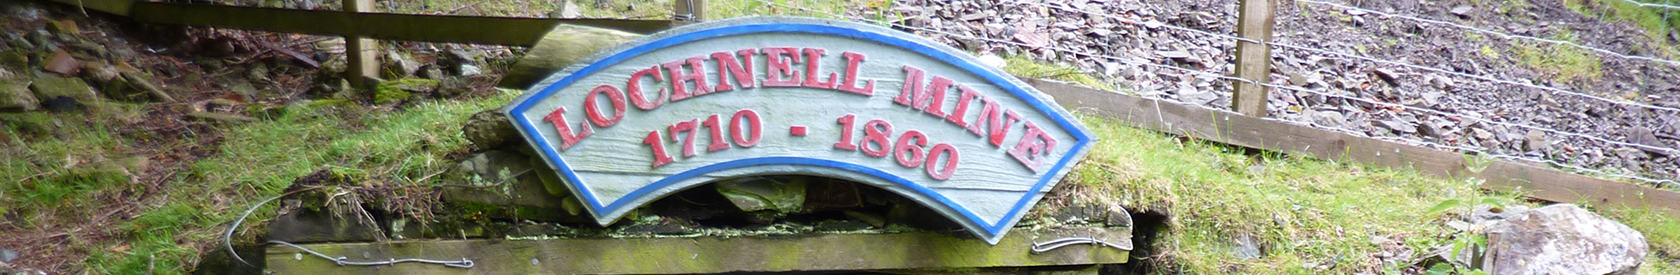 The Lochnell Mine Experience